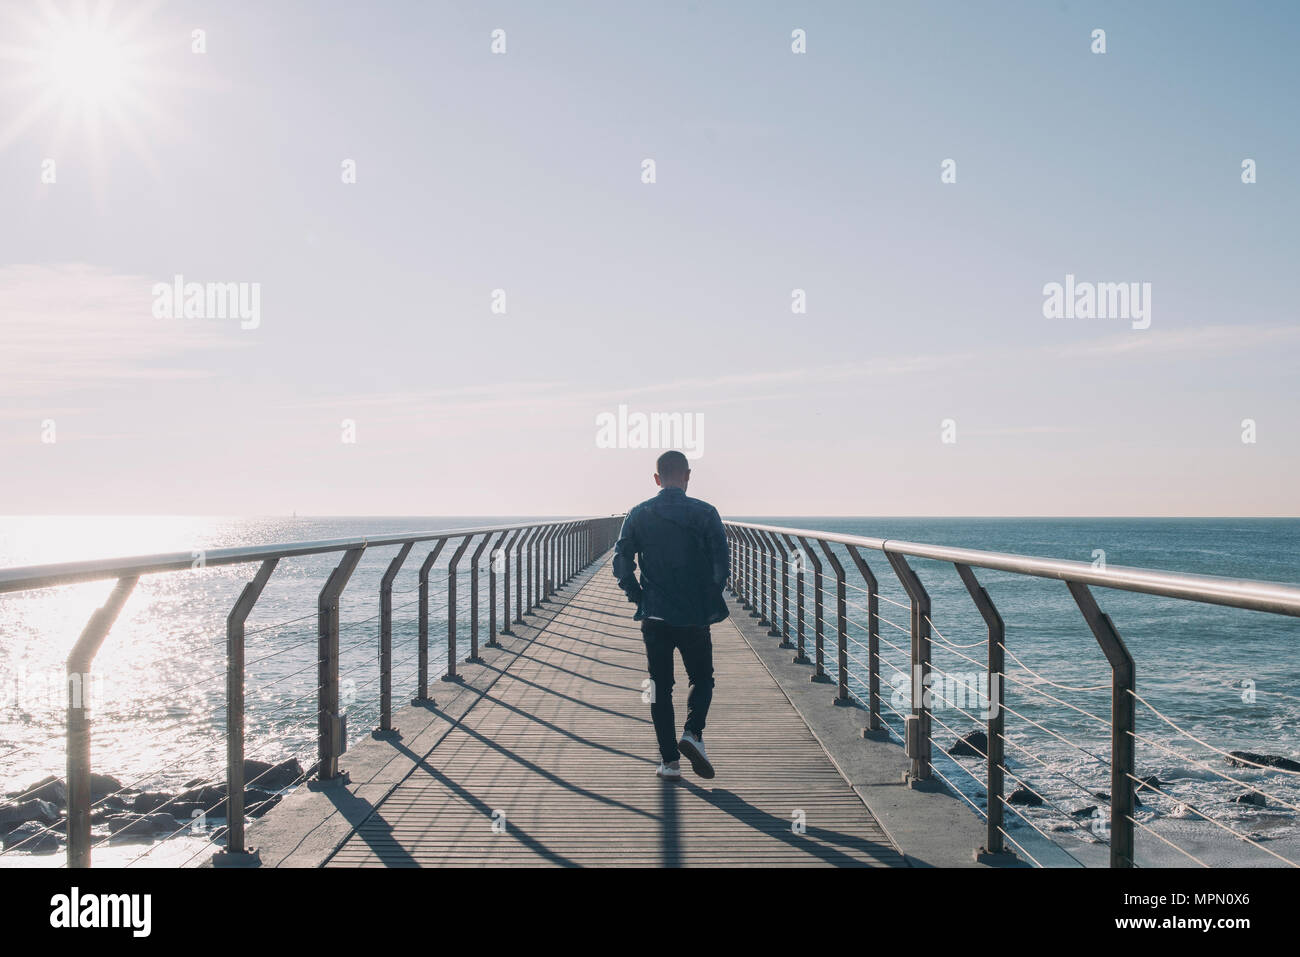 Back view of man walking on boardwalk at backlight - Stock Image